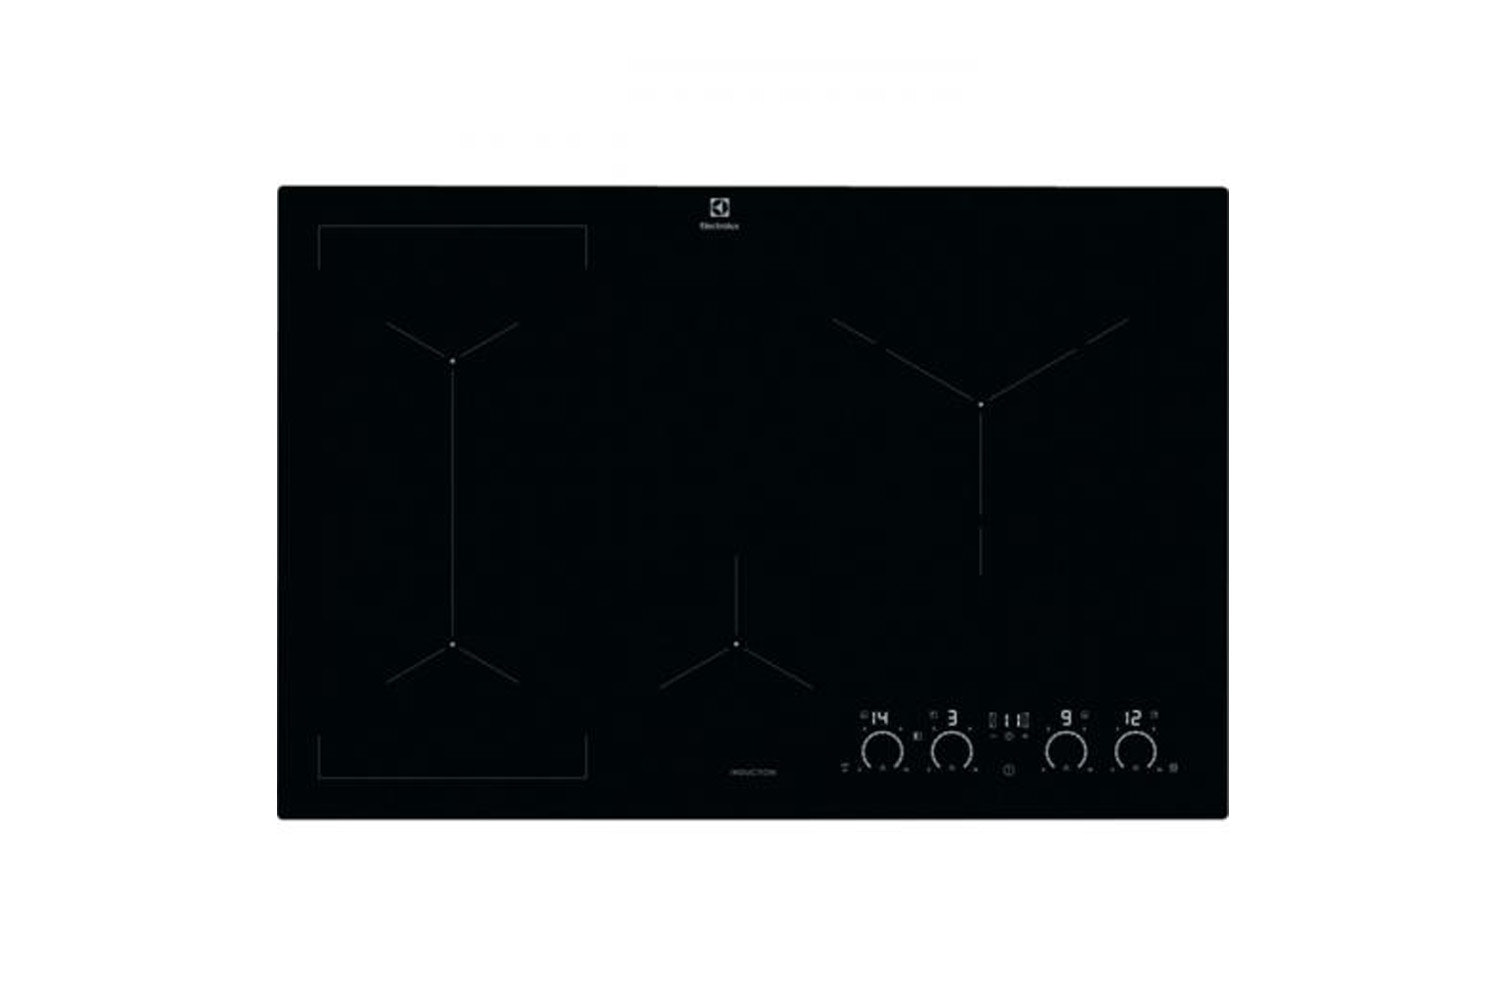 Electrolux 80cm Induction Hob | KIV8346